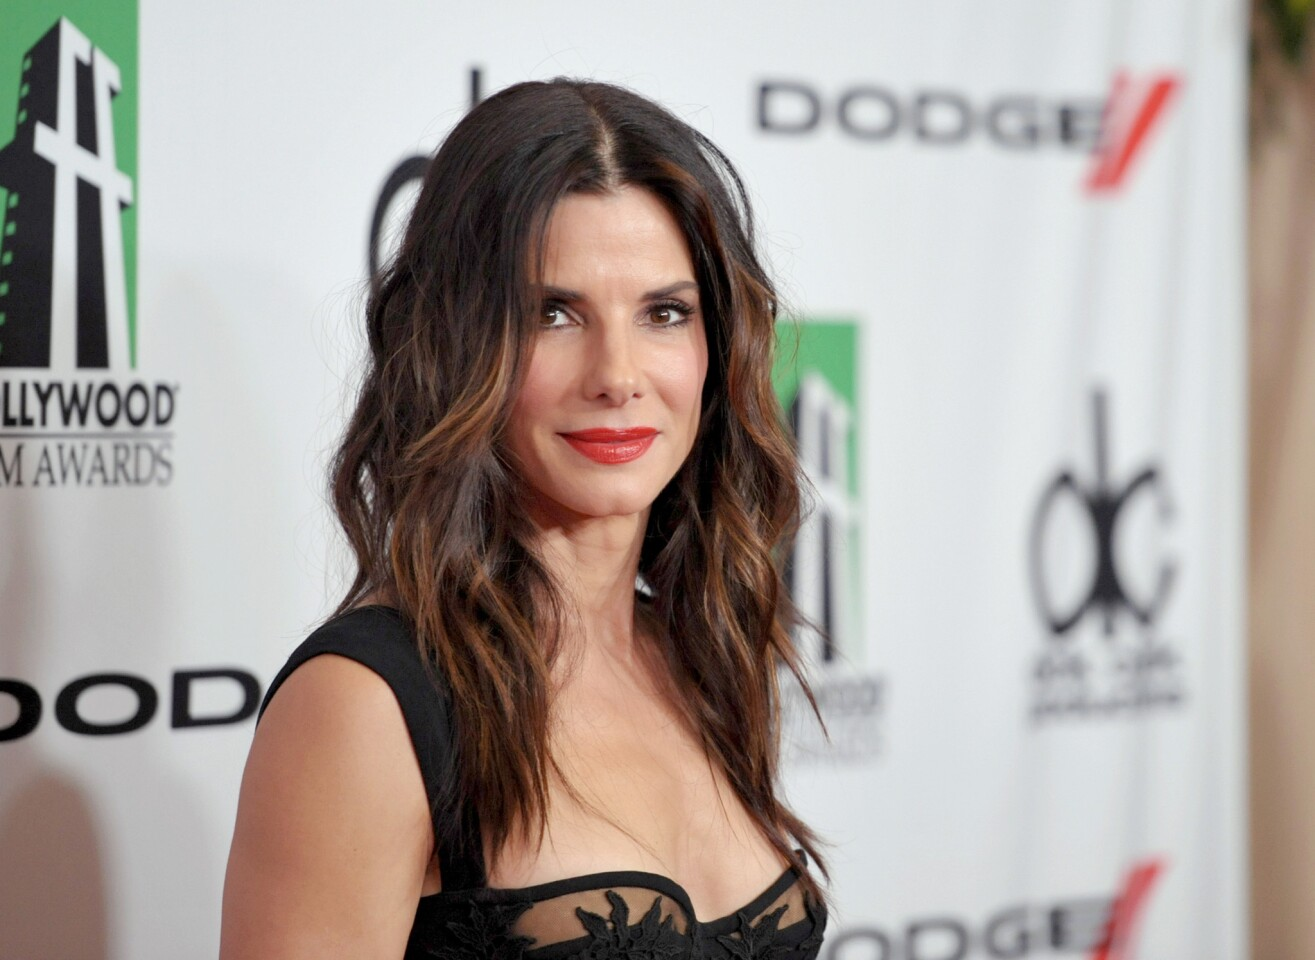 On June 8, police say Joshua Corbett entered actress Sandra Bullock's home. She called 911 and police said they found photos of the actress in Corbett's pockets, a letter portraying himself as her husband and a concealed weapons permit from Utah.